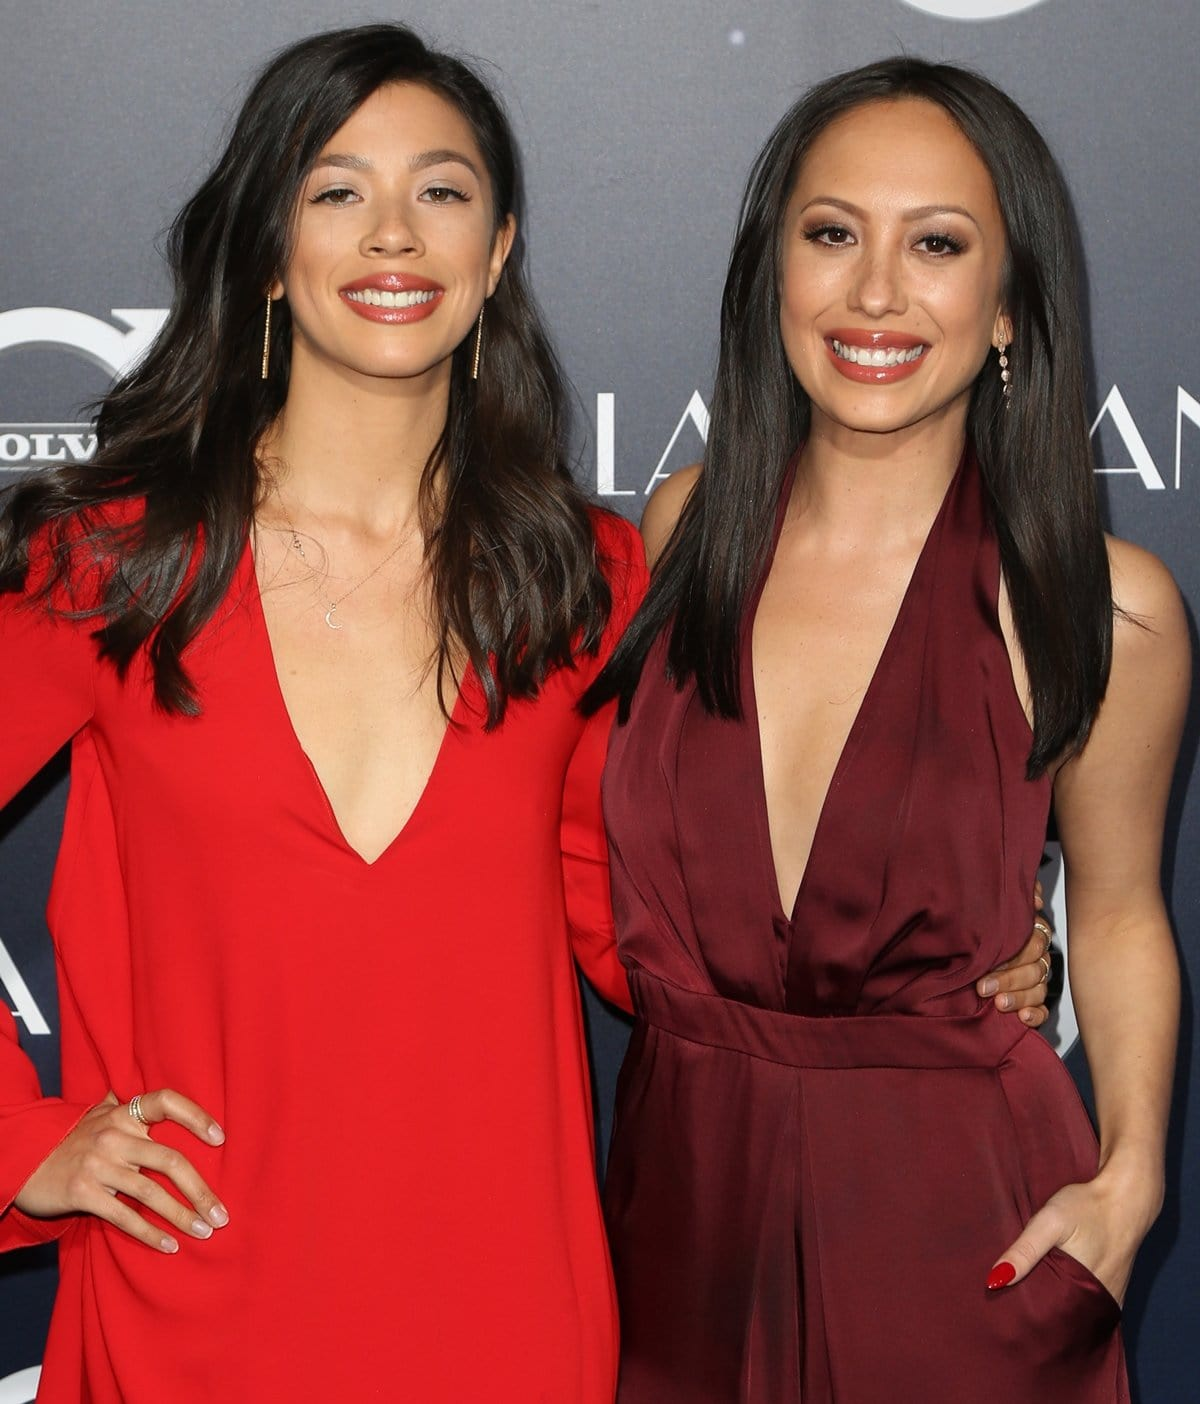 Actress Nicole Wolf is the younger half-sister of Cheryl Burke